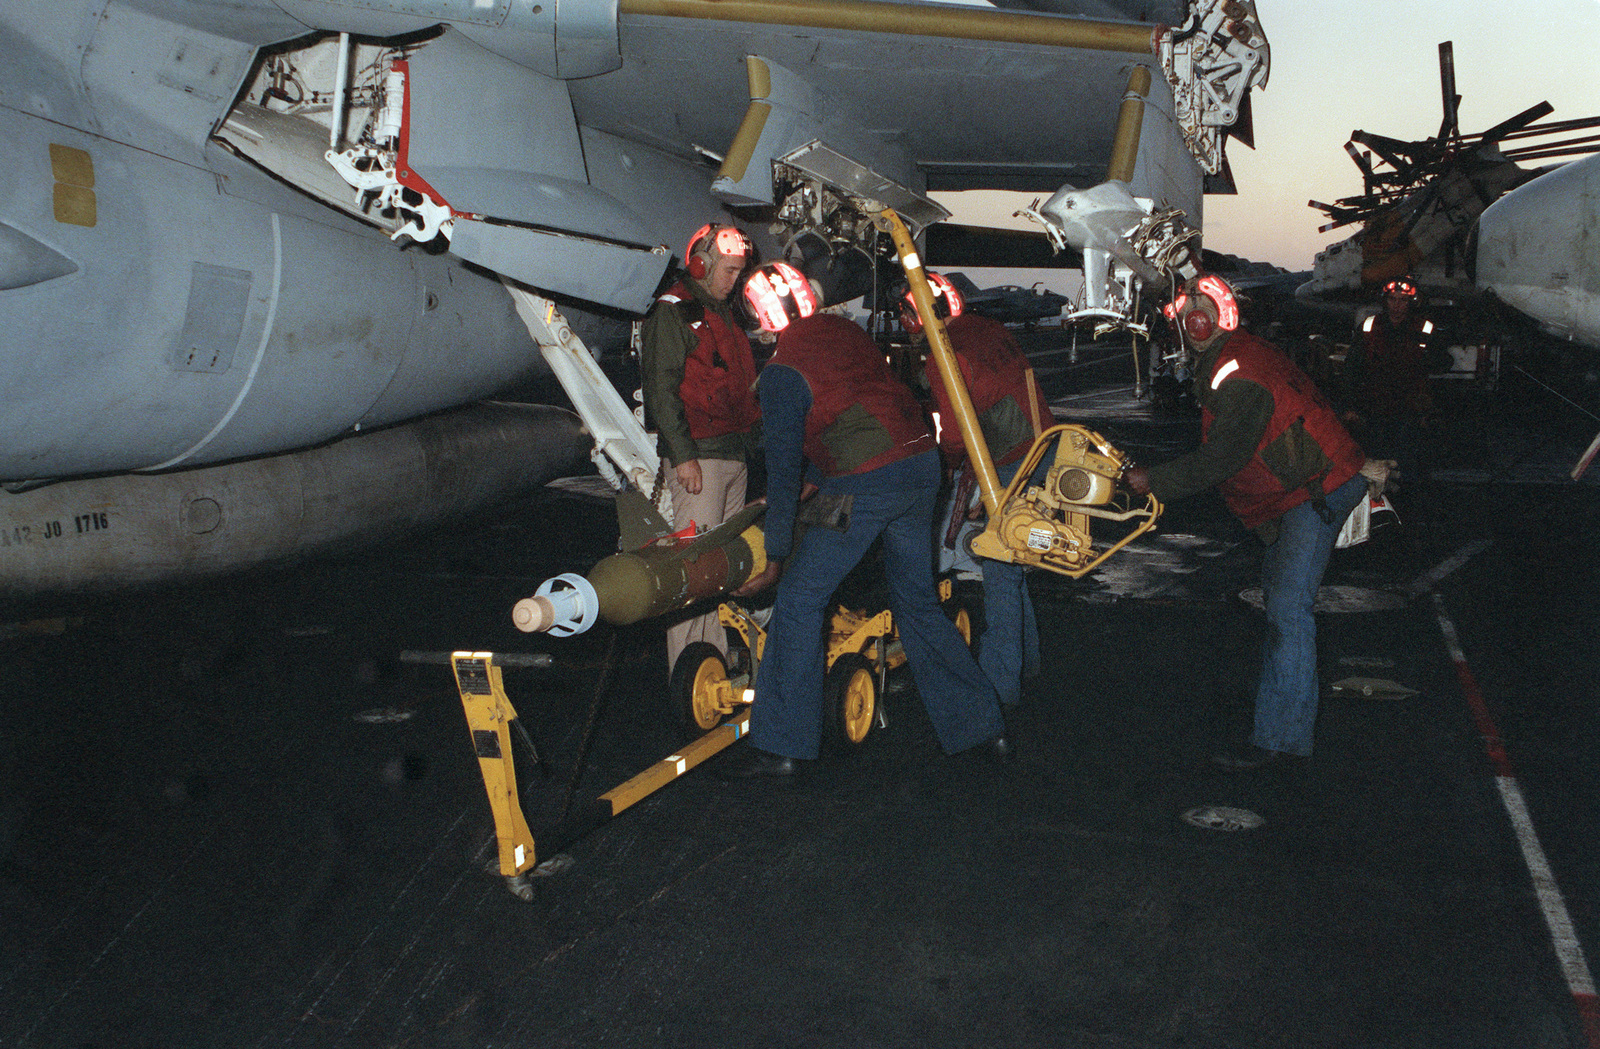 Attack Squadron 65 (VA-65) aviation ordnancemen position a Mark 84 laser-guided bomb under the wing pylon of an A-6E Intruder aircraft during flight operations aboard the nuclear-powered aircraft carrier USS DWIGHT D. EISENHOWER (CVN 69)